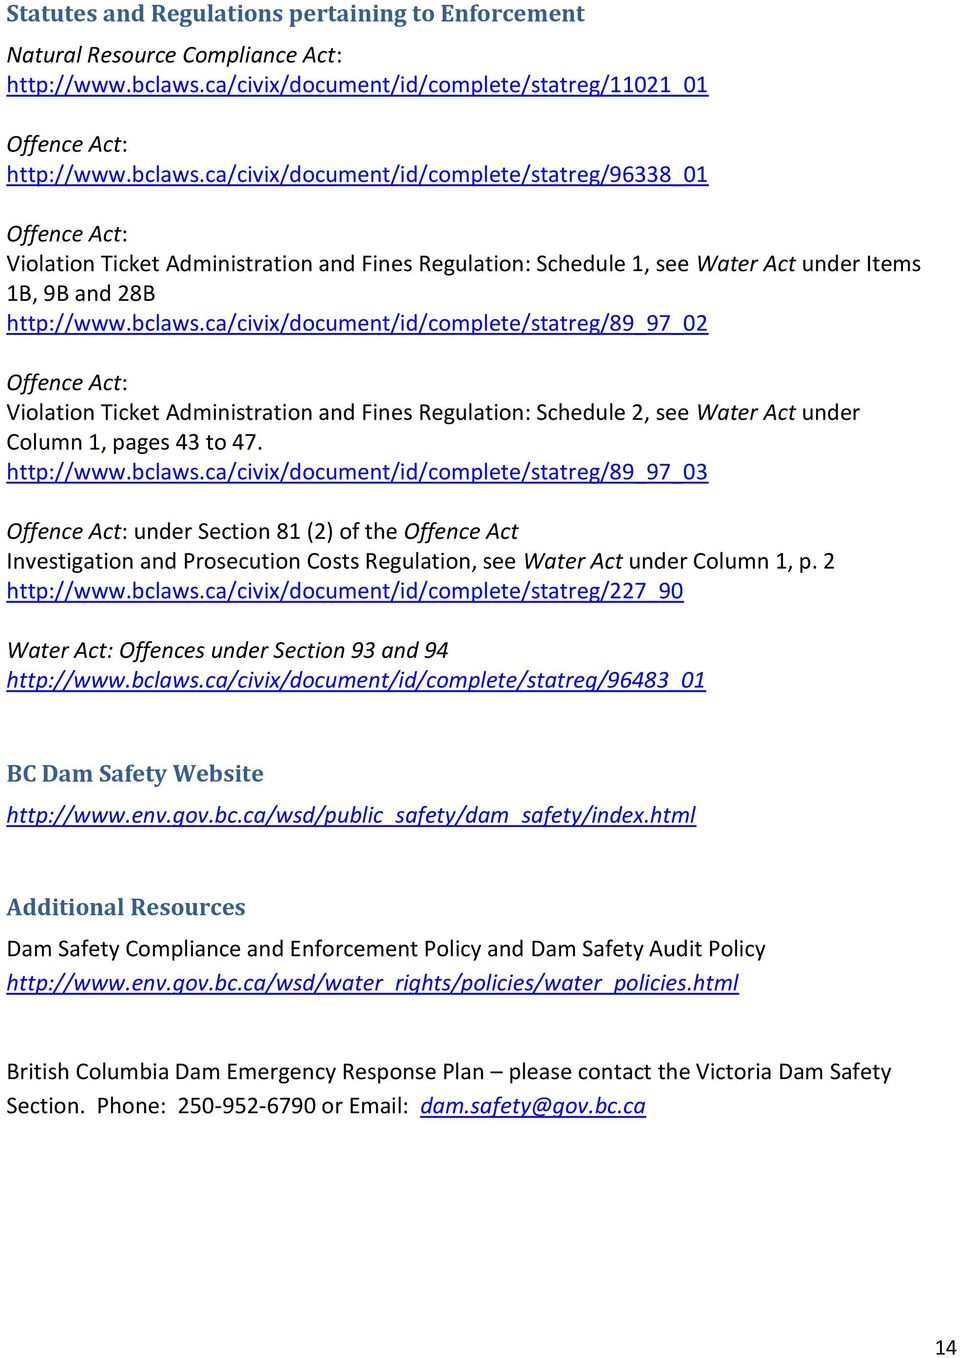 ca/civix/document/id/complete/statreg/96338_01 Offence Act: Violation Ticket Administration and Fines Regulation: Schedule 1, see Water Act under Items 1B, 9B and 28B http://www.bclaws.